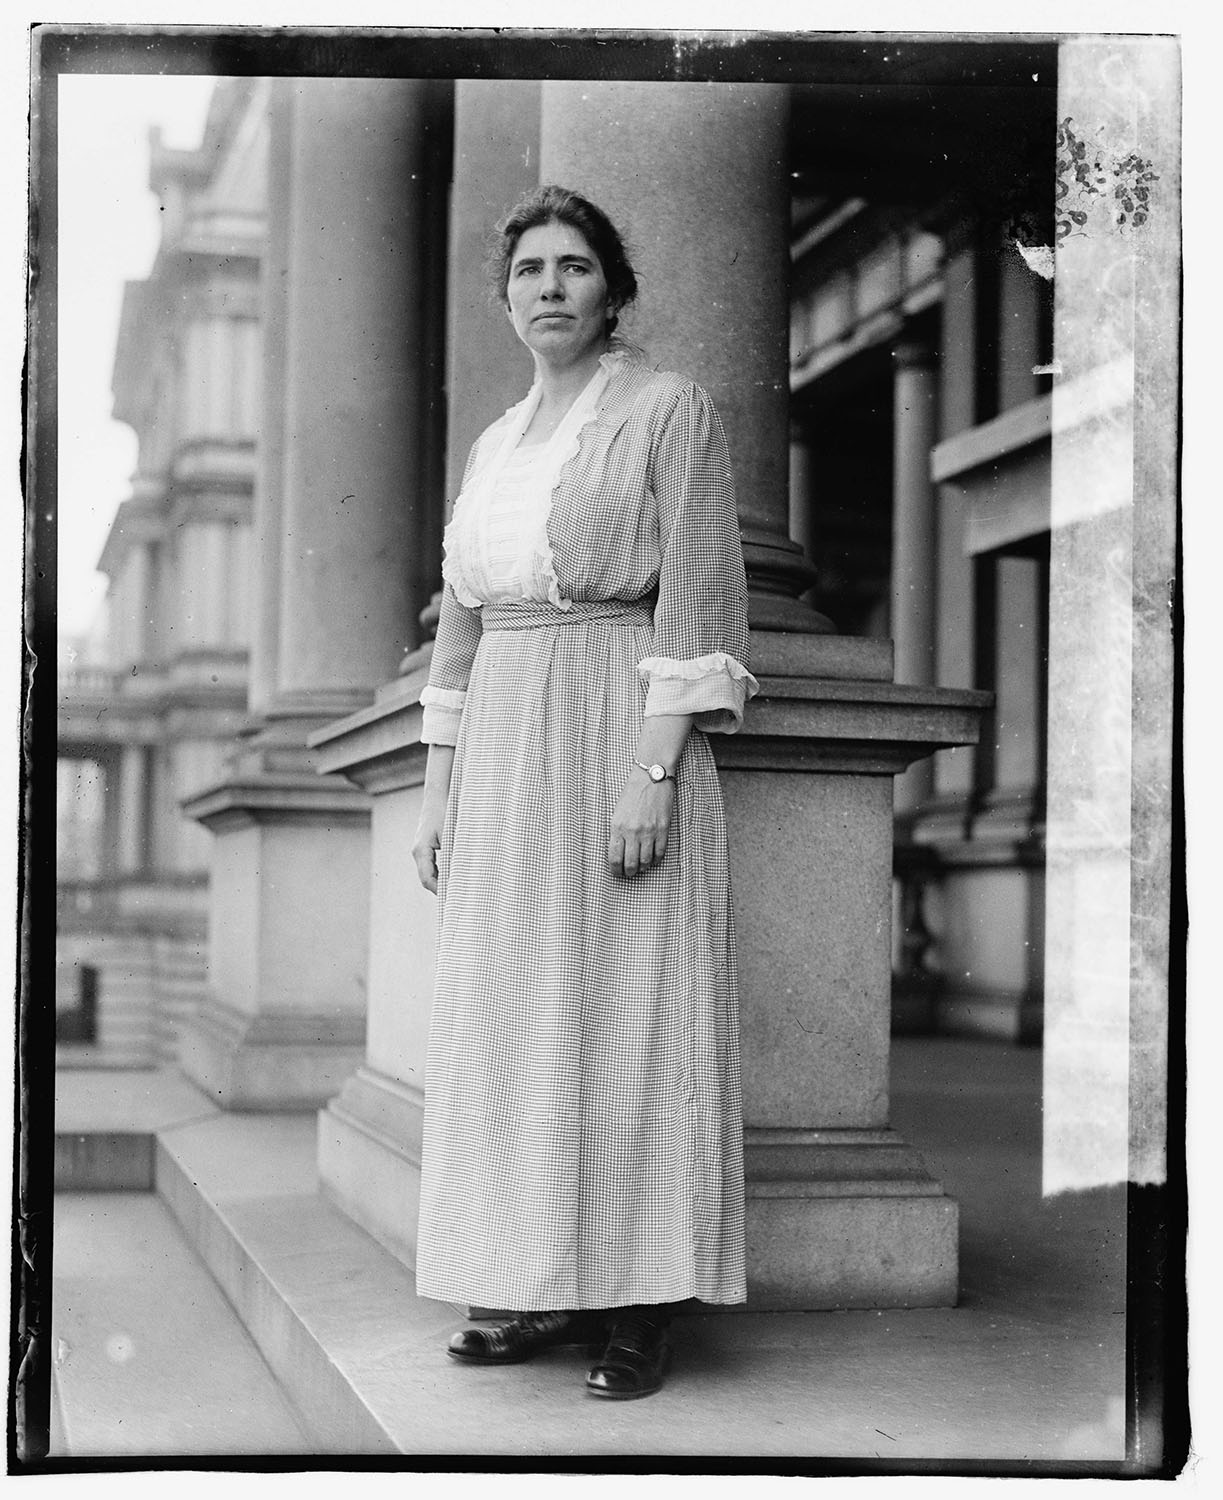 Hannah J. Patterson, appointed temporary assistant to Secretary of War Newton Baker, standing in front of the State, War and Navy Building, Washington, D.C. 1919. Courtesy of the Library of Congress, Prints and Photographs Division.